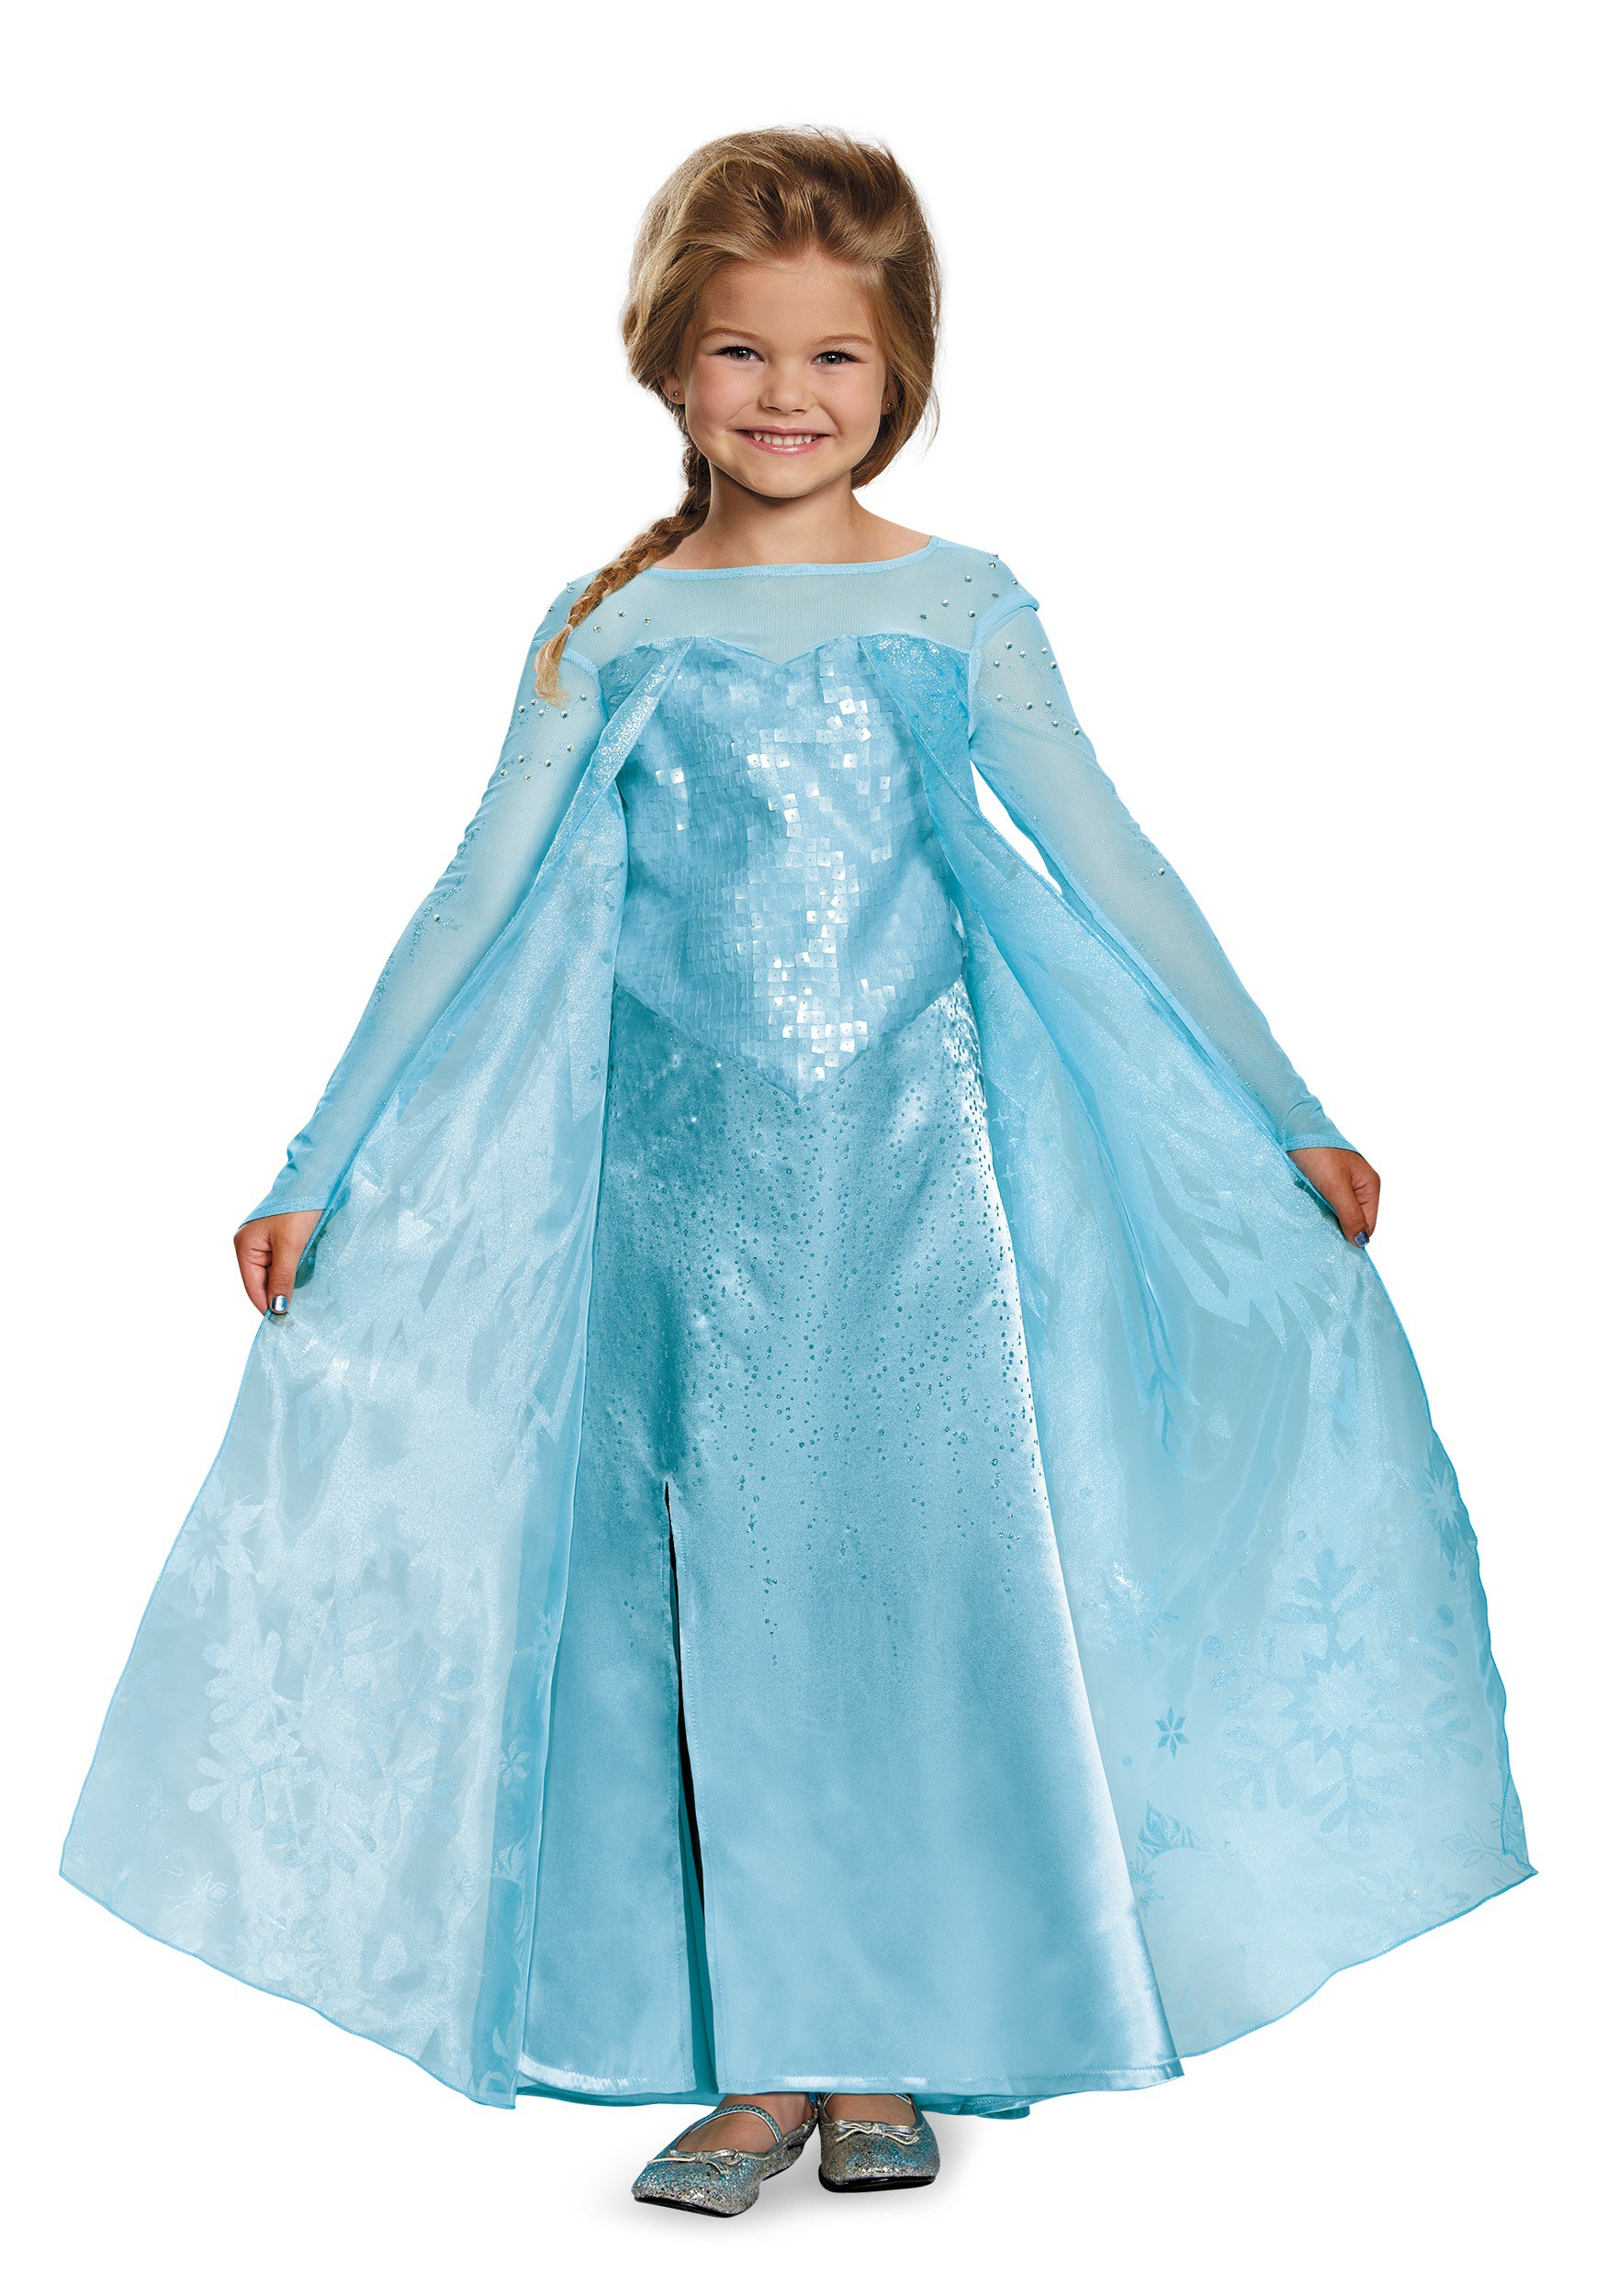 sc 1 st  Halloween Costumes : frozen anna costume kids  - Germanpascual.Com